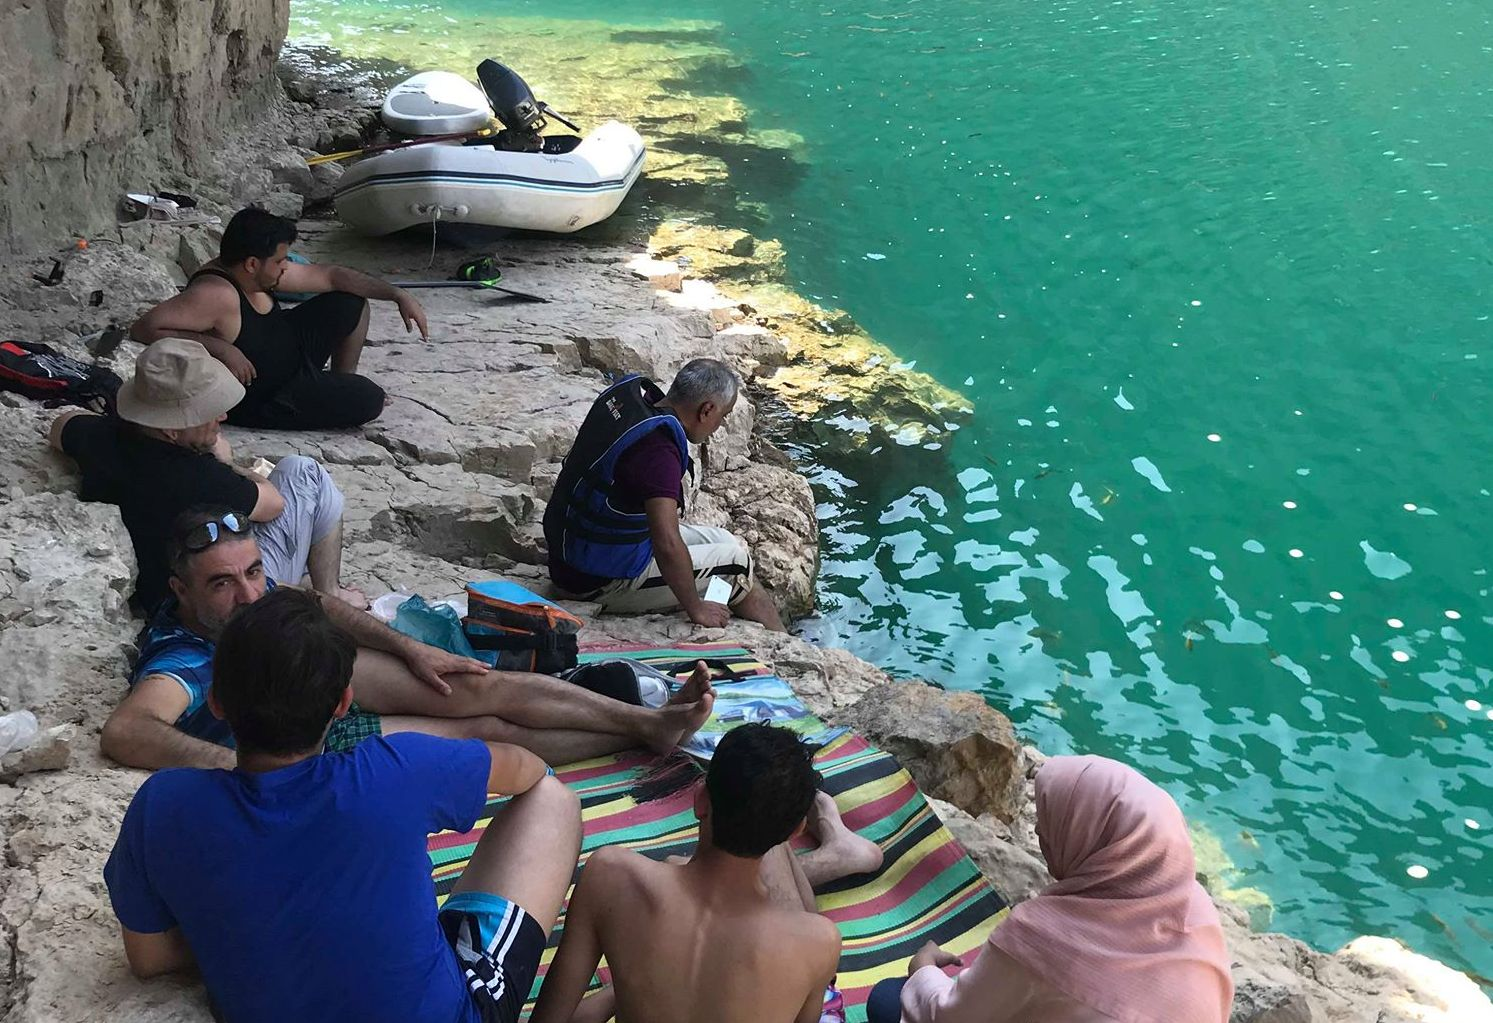 North-South Exchange II for Iraqi Water Activists in Sulaymaniyah